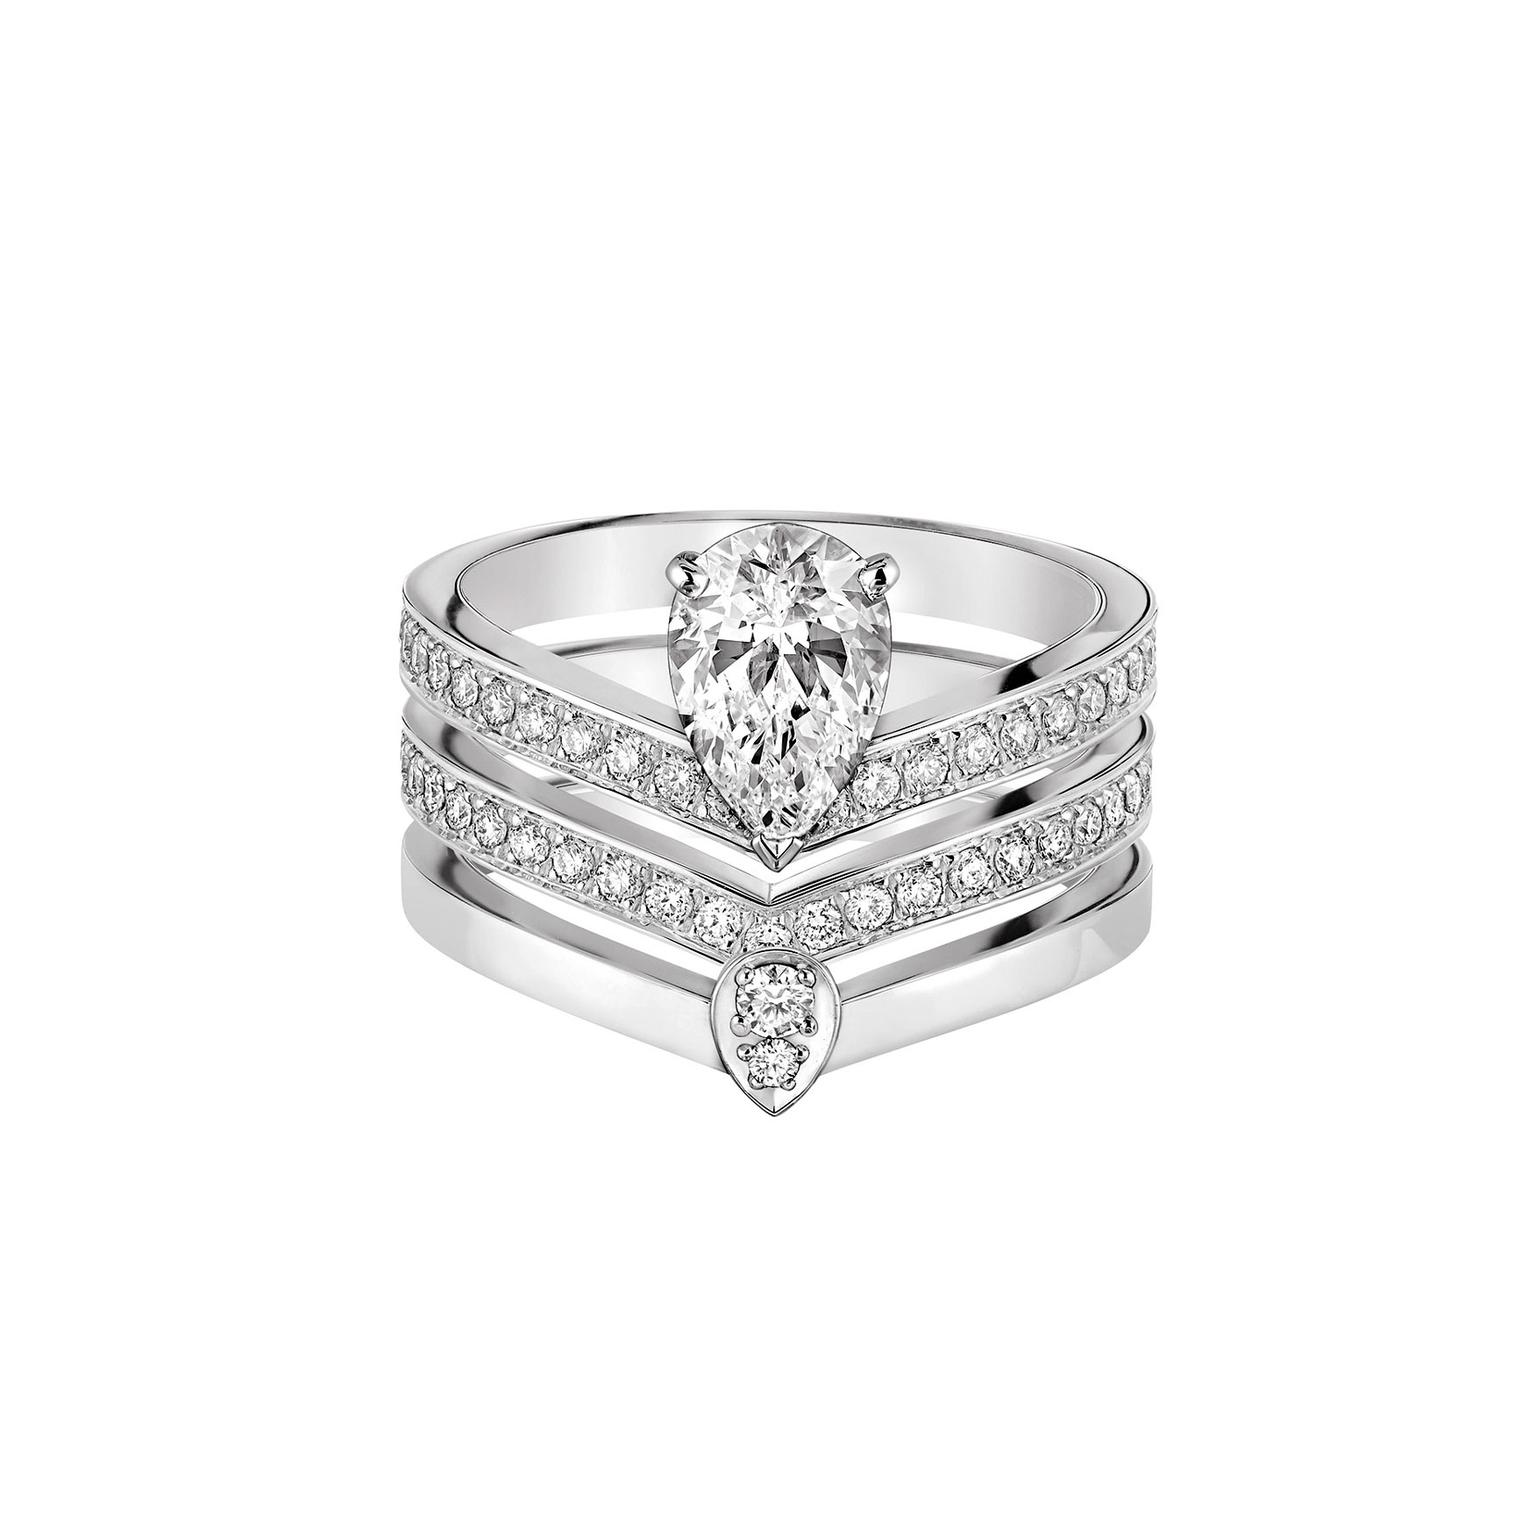 Chaumet Alliance Joséphine Aigrette trio diamond rings